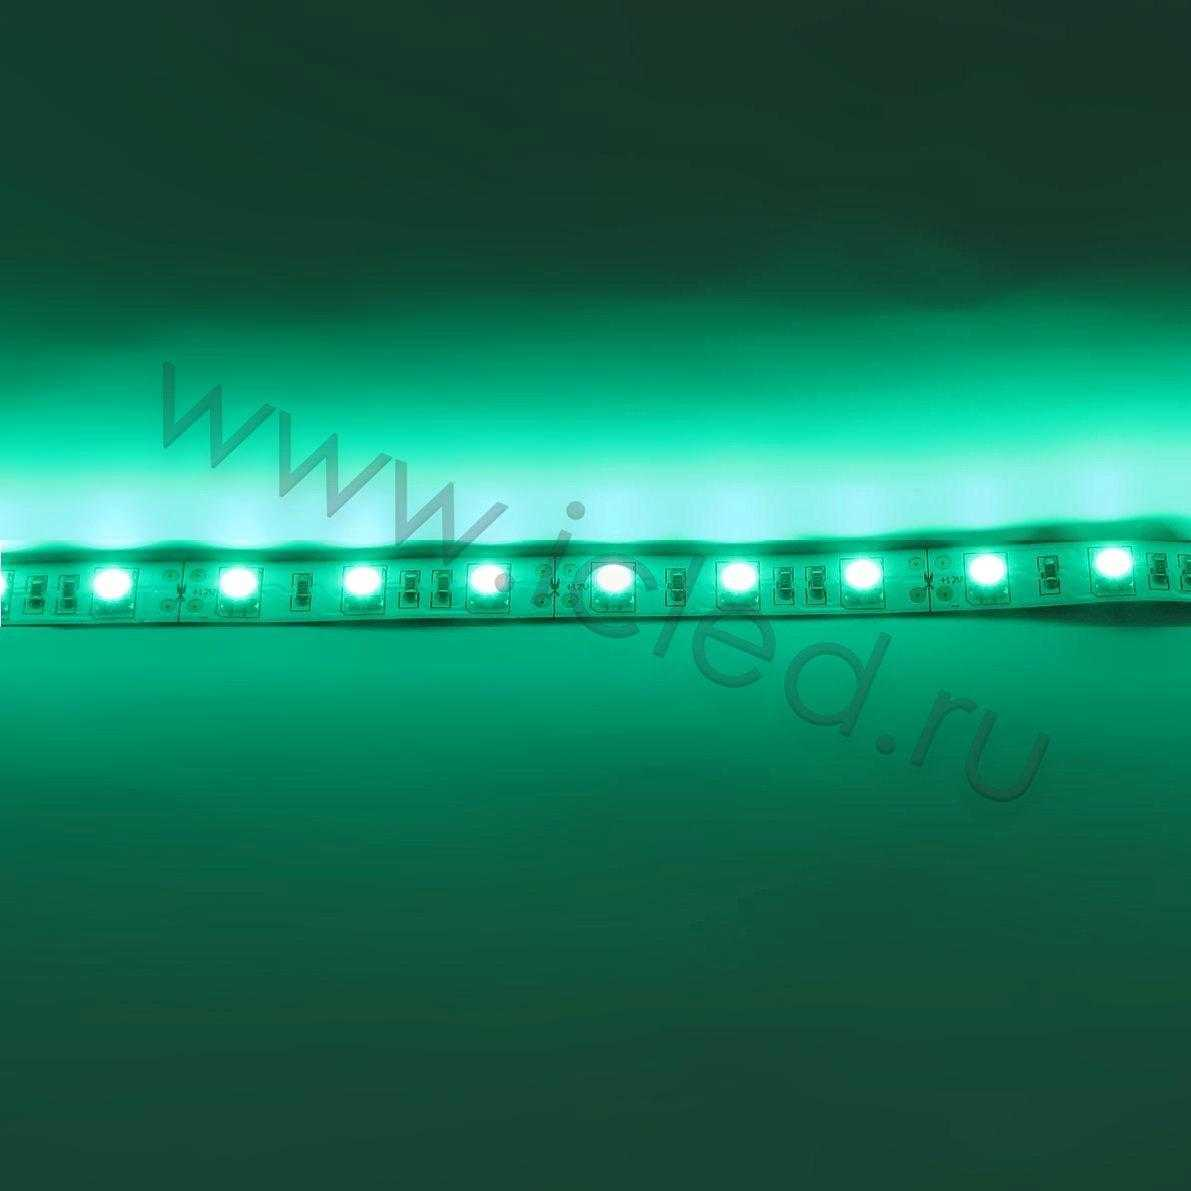 Светодиодная лента  Standart PRO class, 5050, 60led/m, Green, 12V, IP33